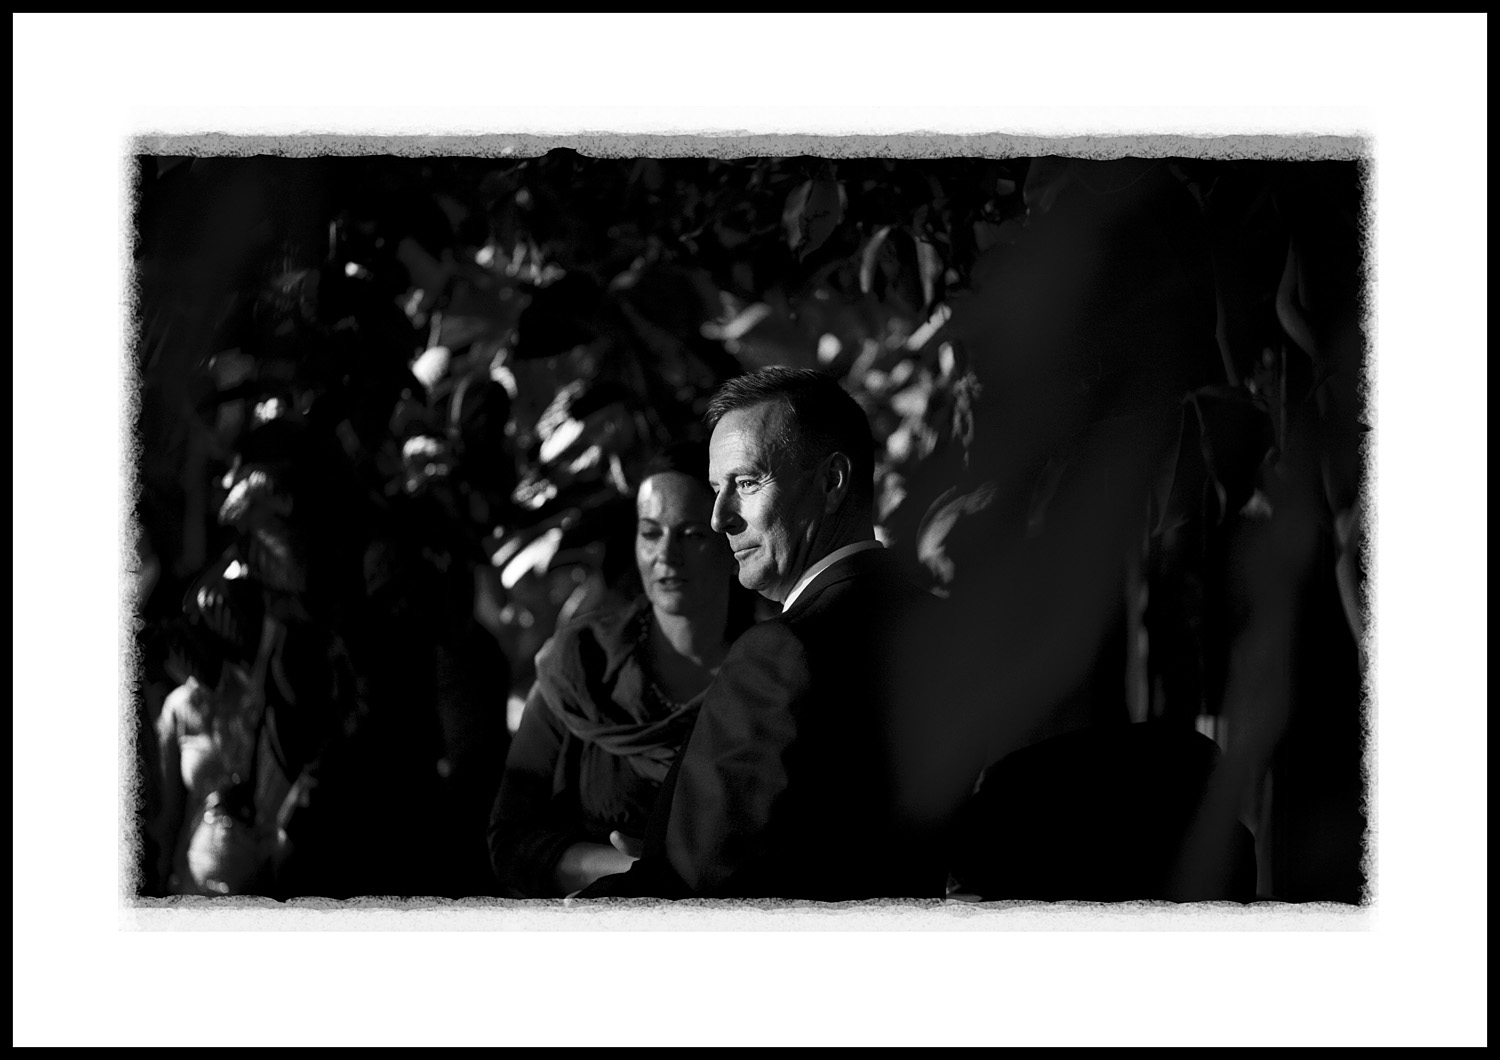 A quiet moment during a drinks reception at Kew Gardens... (85mm lens, 125th/F2, 1600asa)